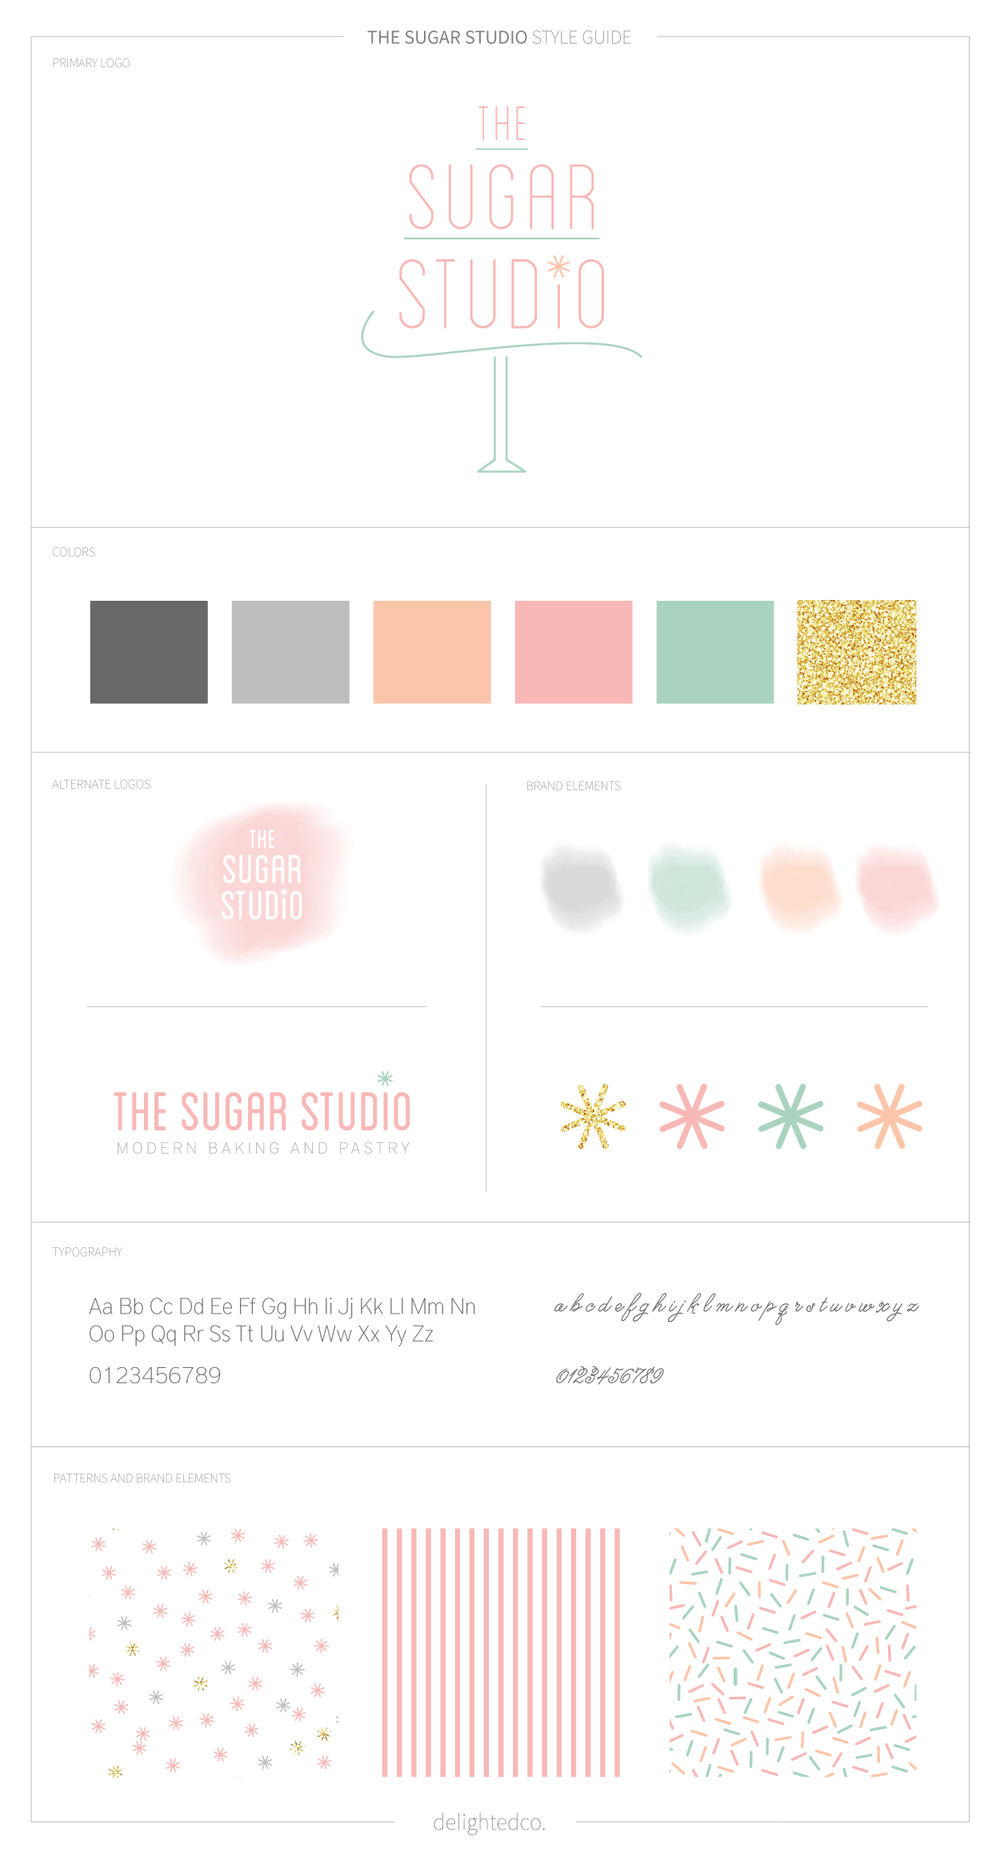 The Sugar Studio Brand Style Guide by DelightedCo.